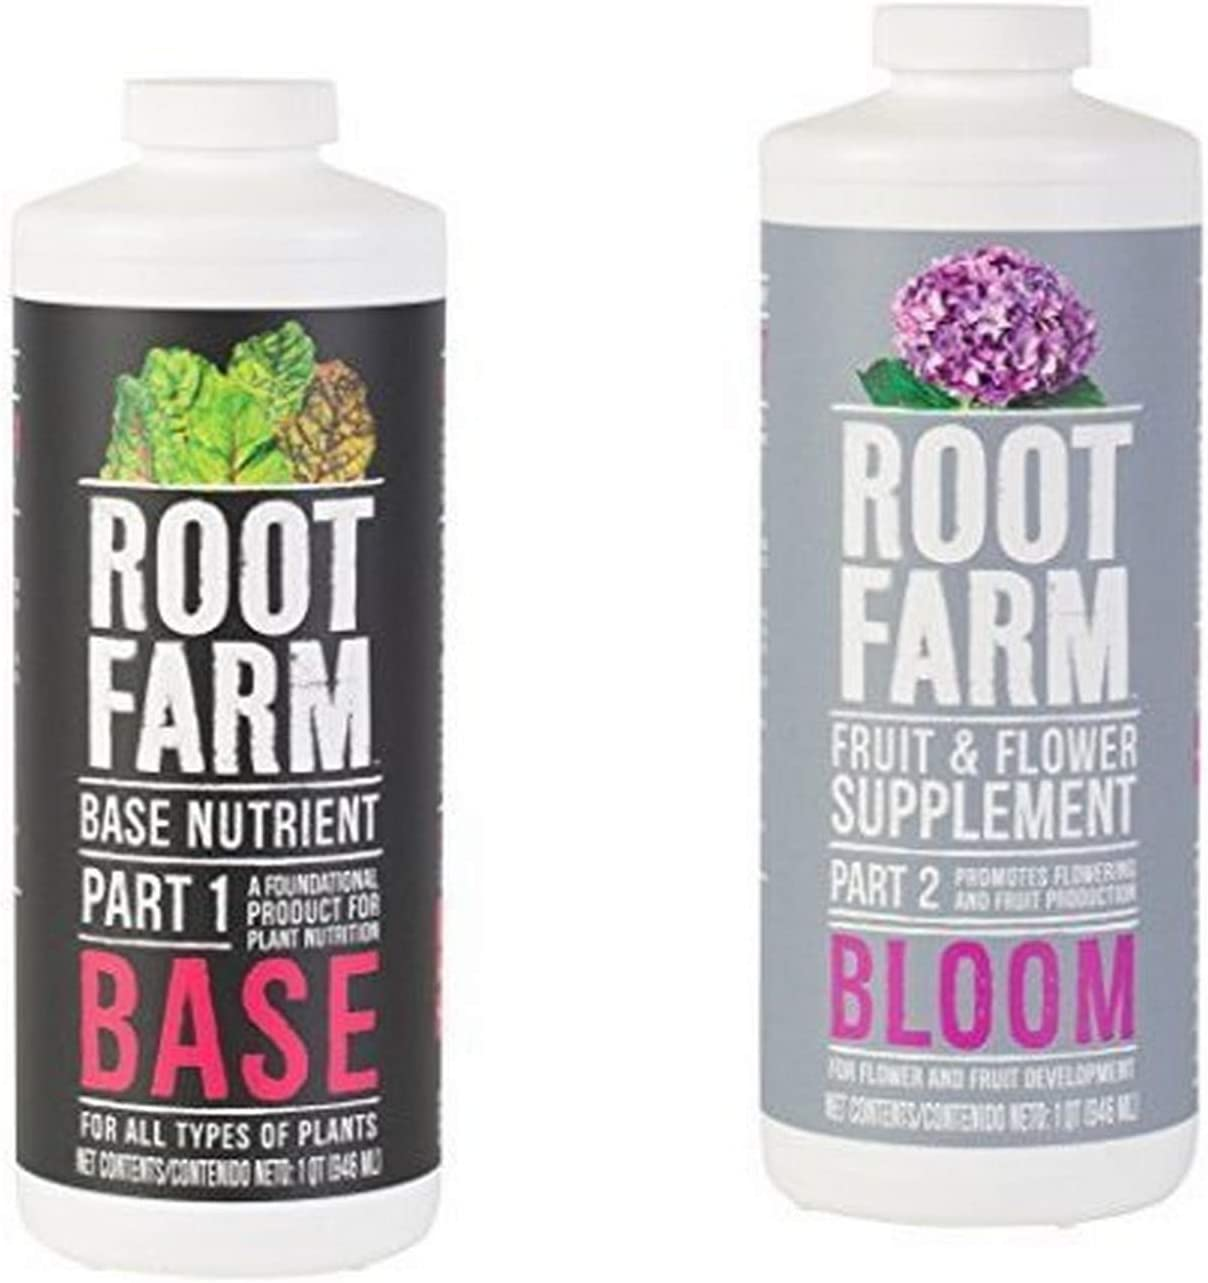 Root Farm Base Nutrient and 10101-10093 Fruit & Flower Supplement